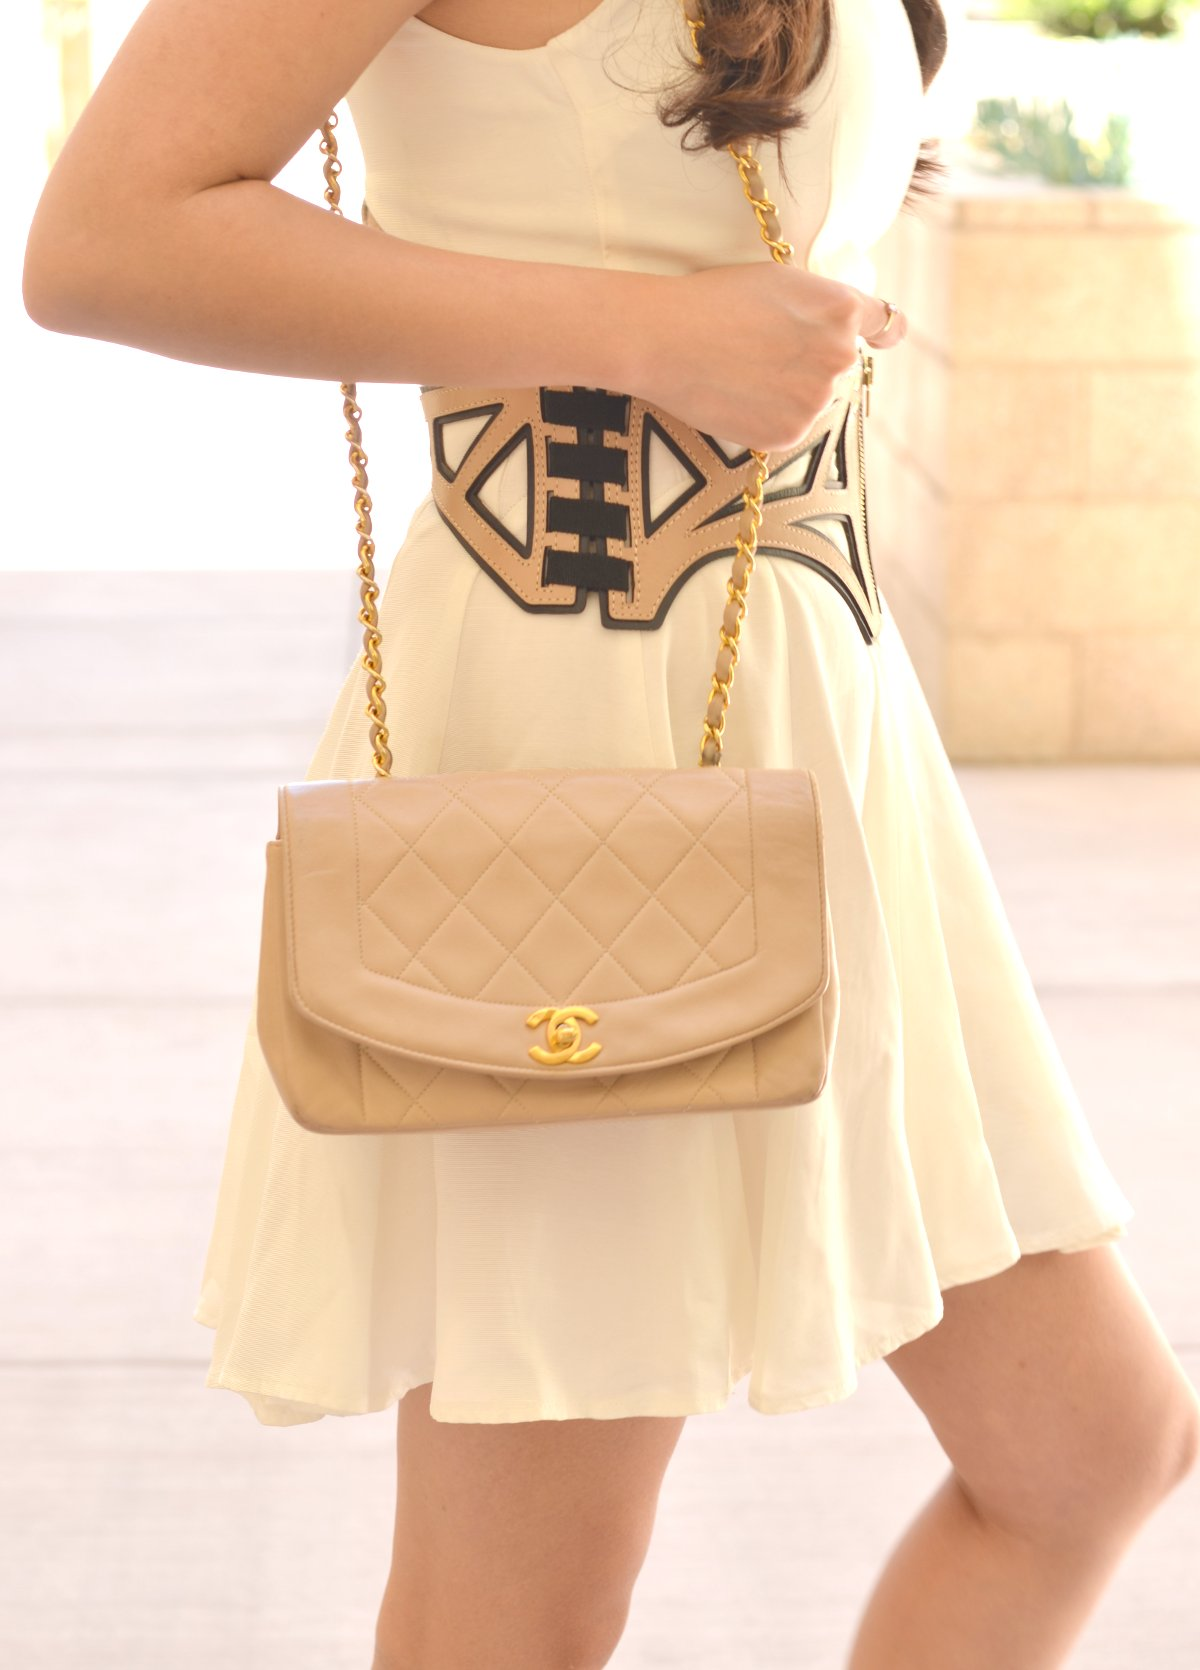 beige chanel bag on person with herve leger corset harness